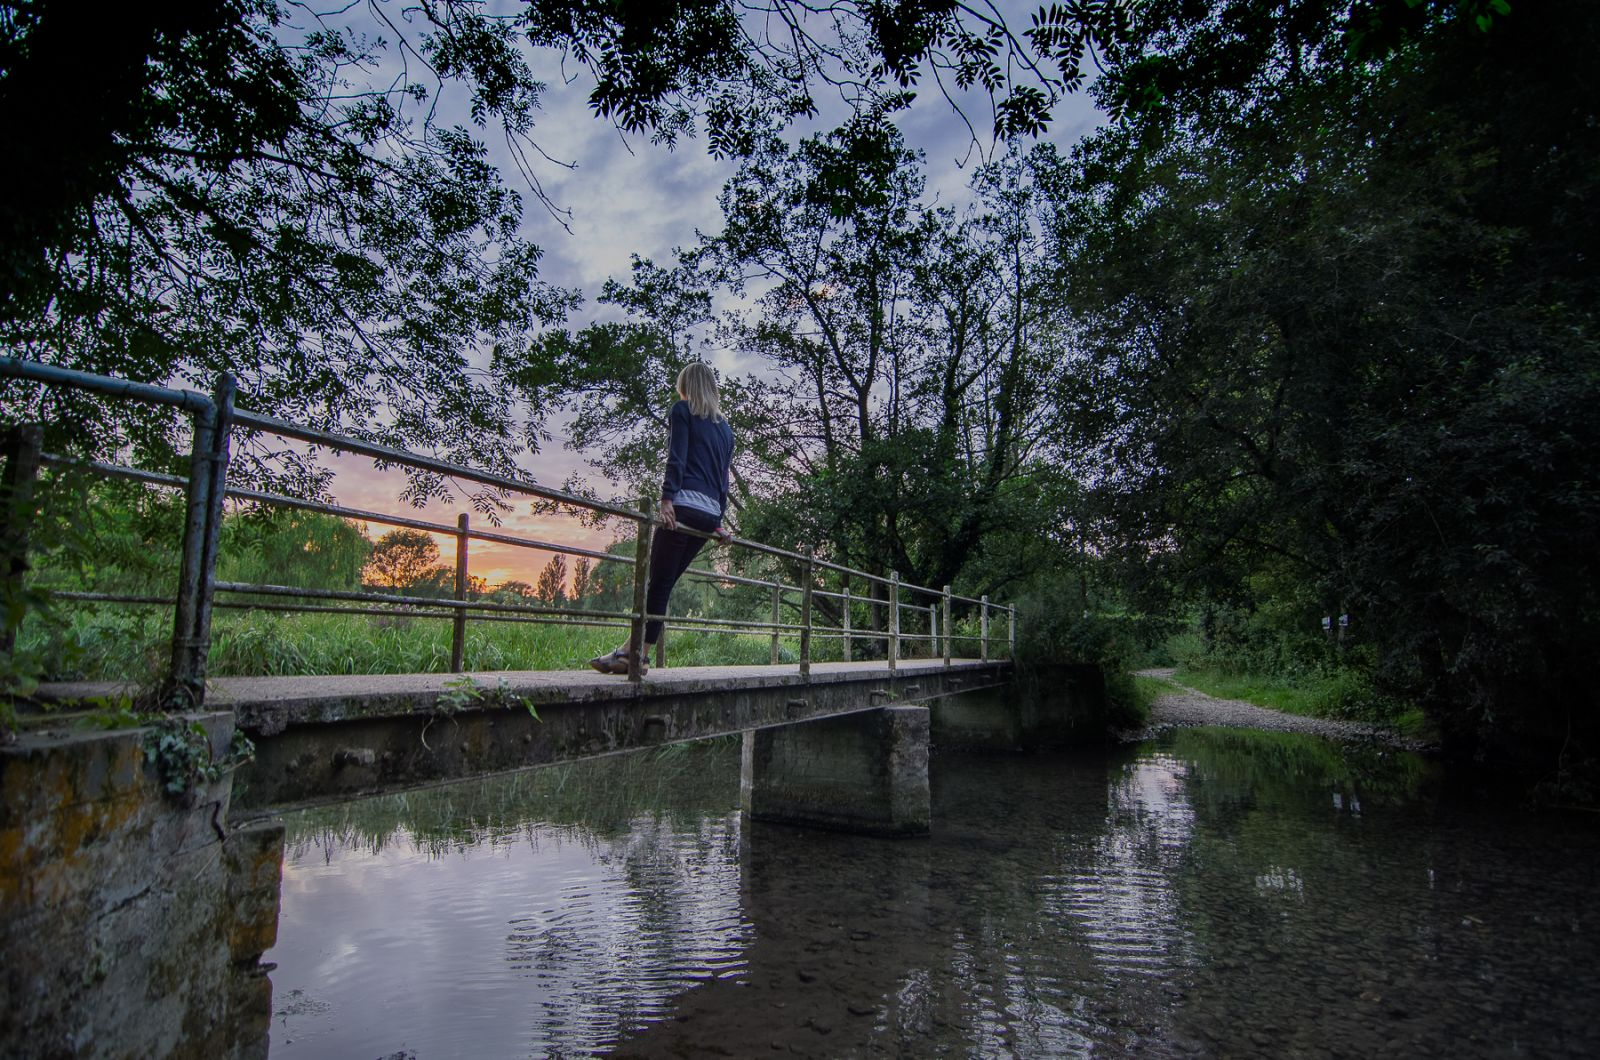 Image of Ramsbury Triangle - ARK Photography competition winner Simon Baker